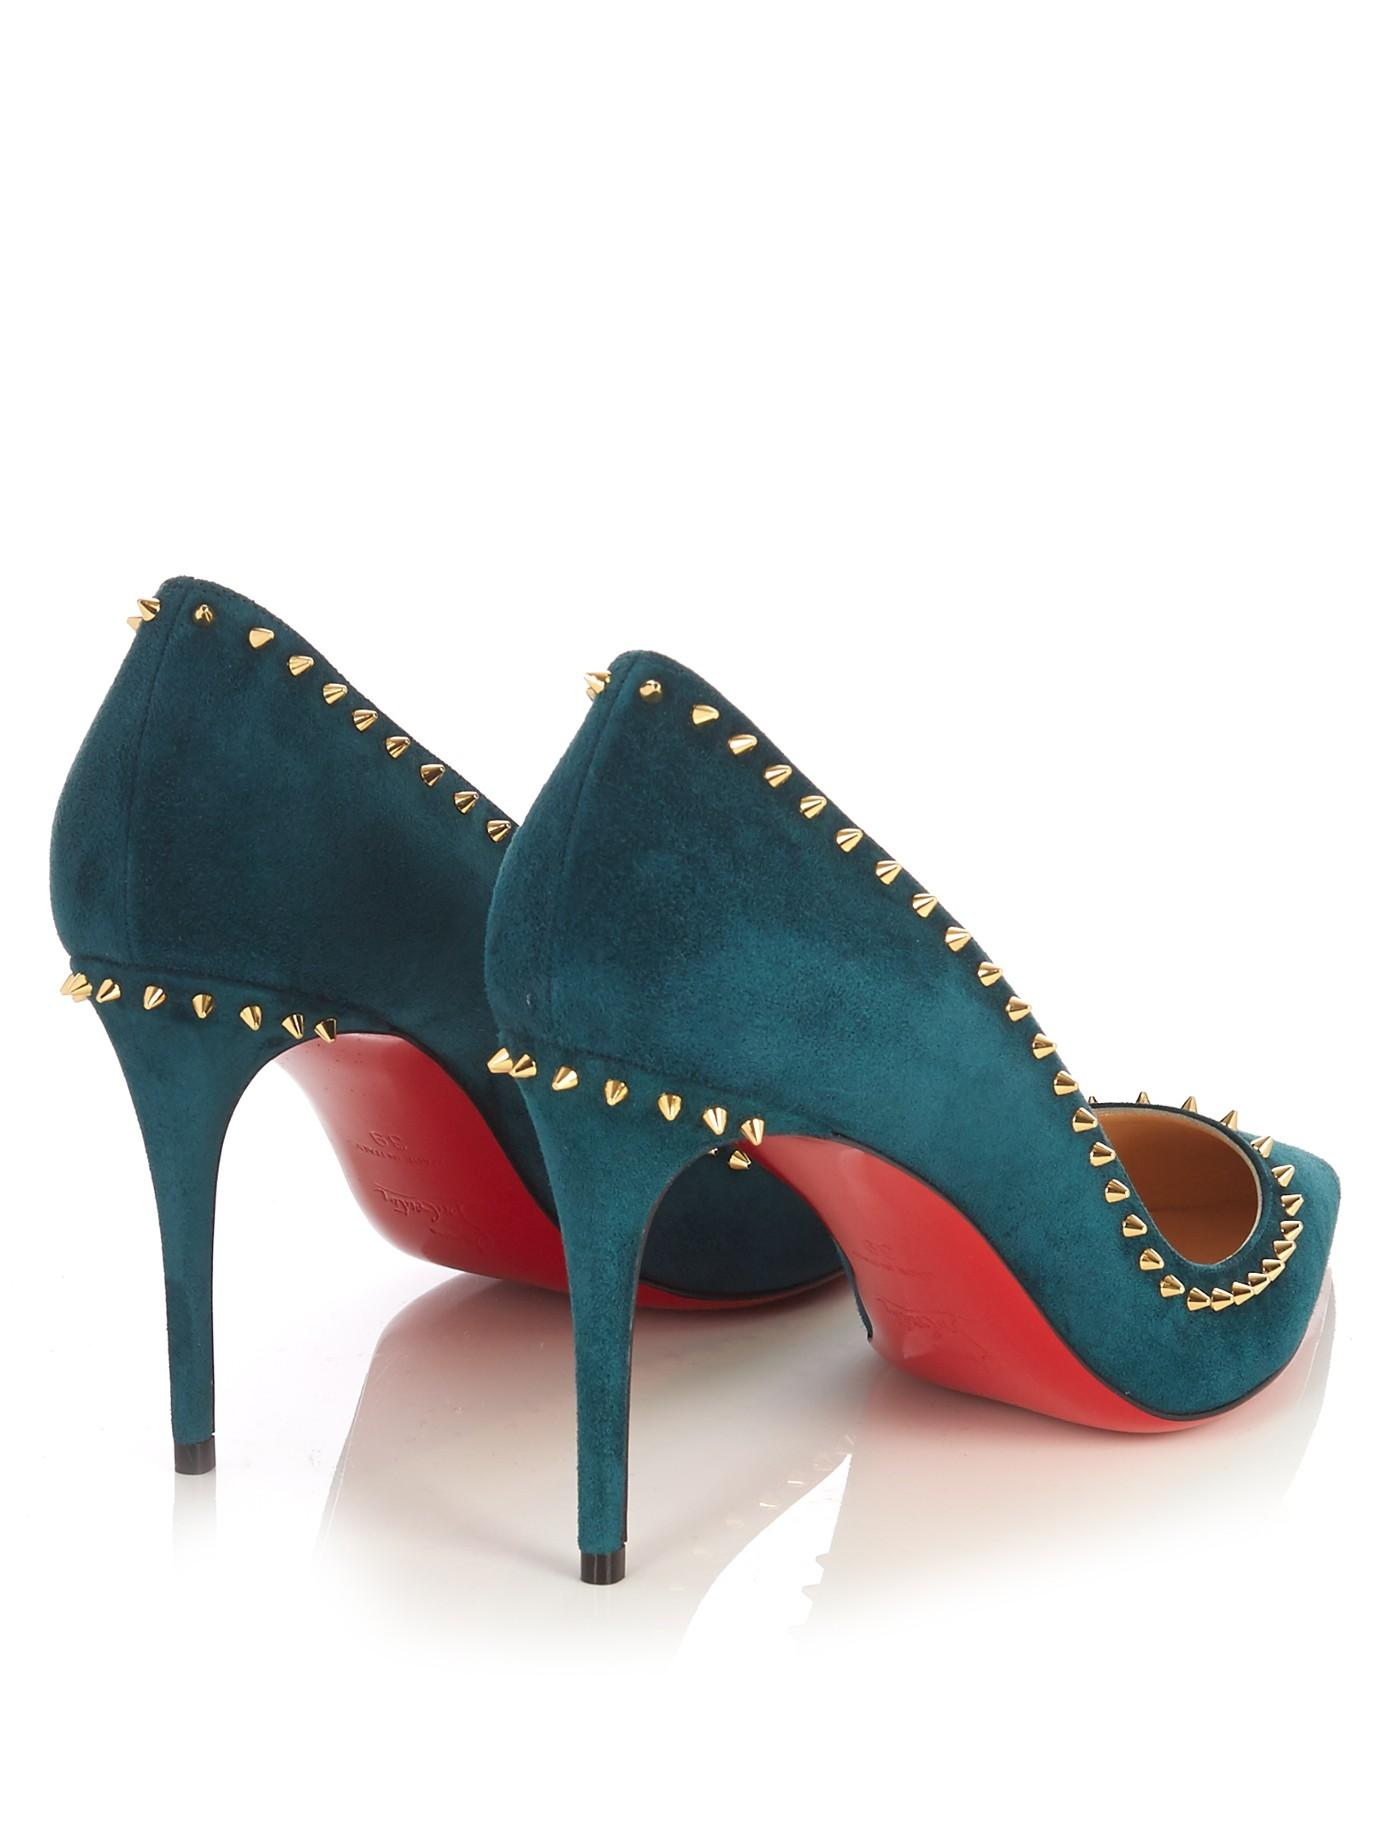 46df91777bf5 Lyst - Christian Louboutin Anjalina 85mm Suede Pumps in Green